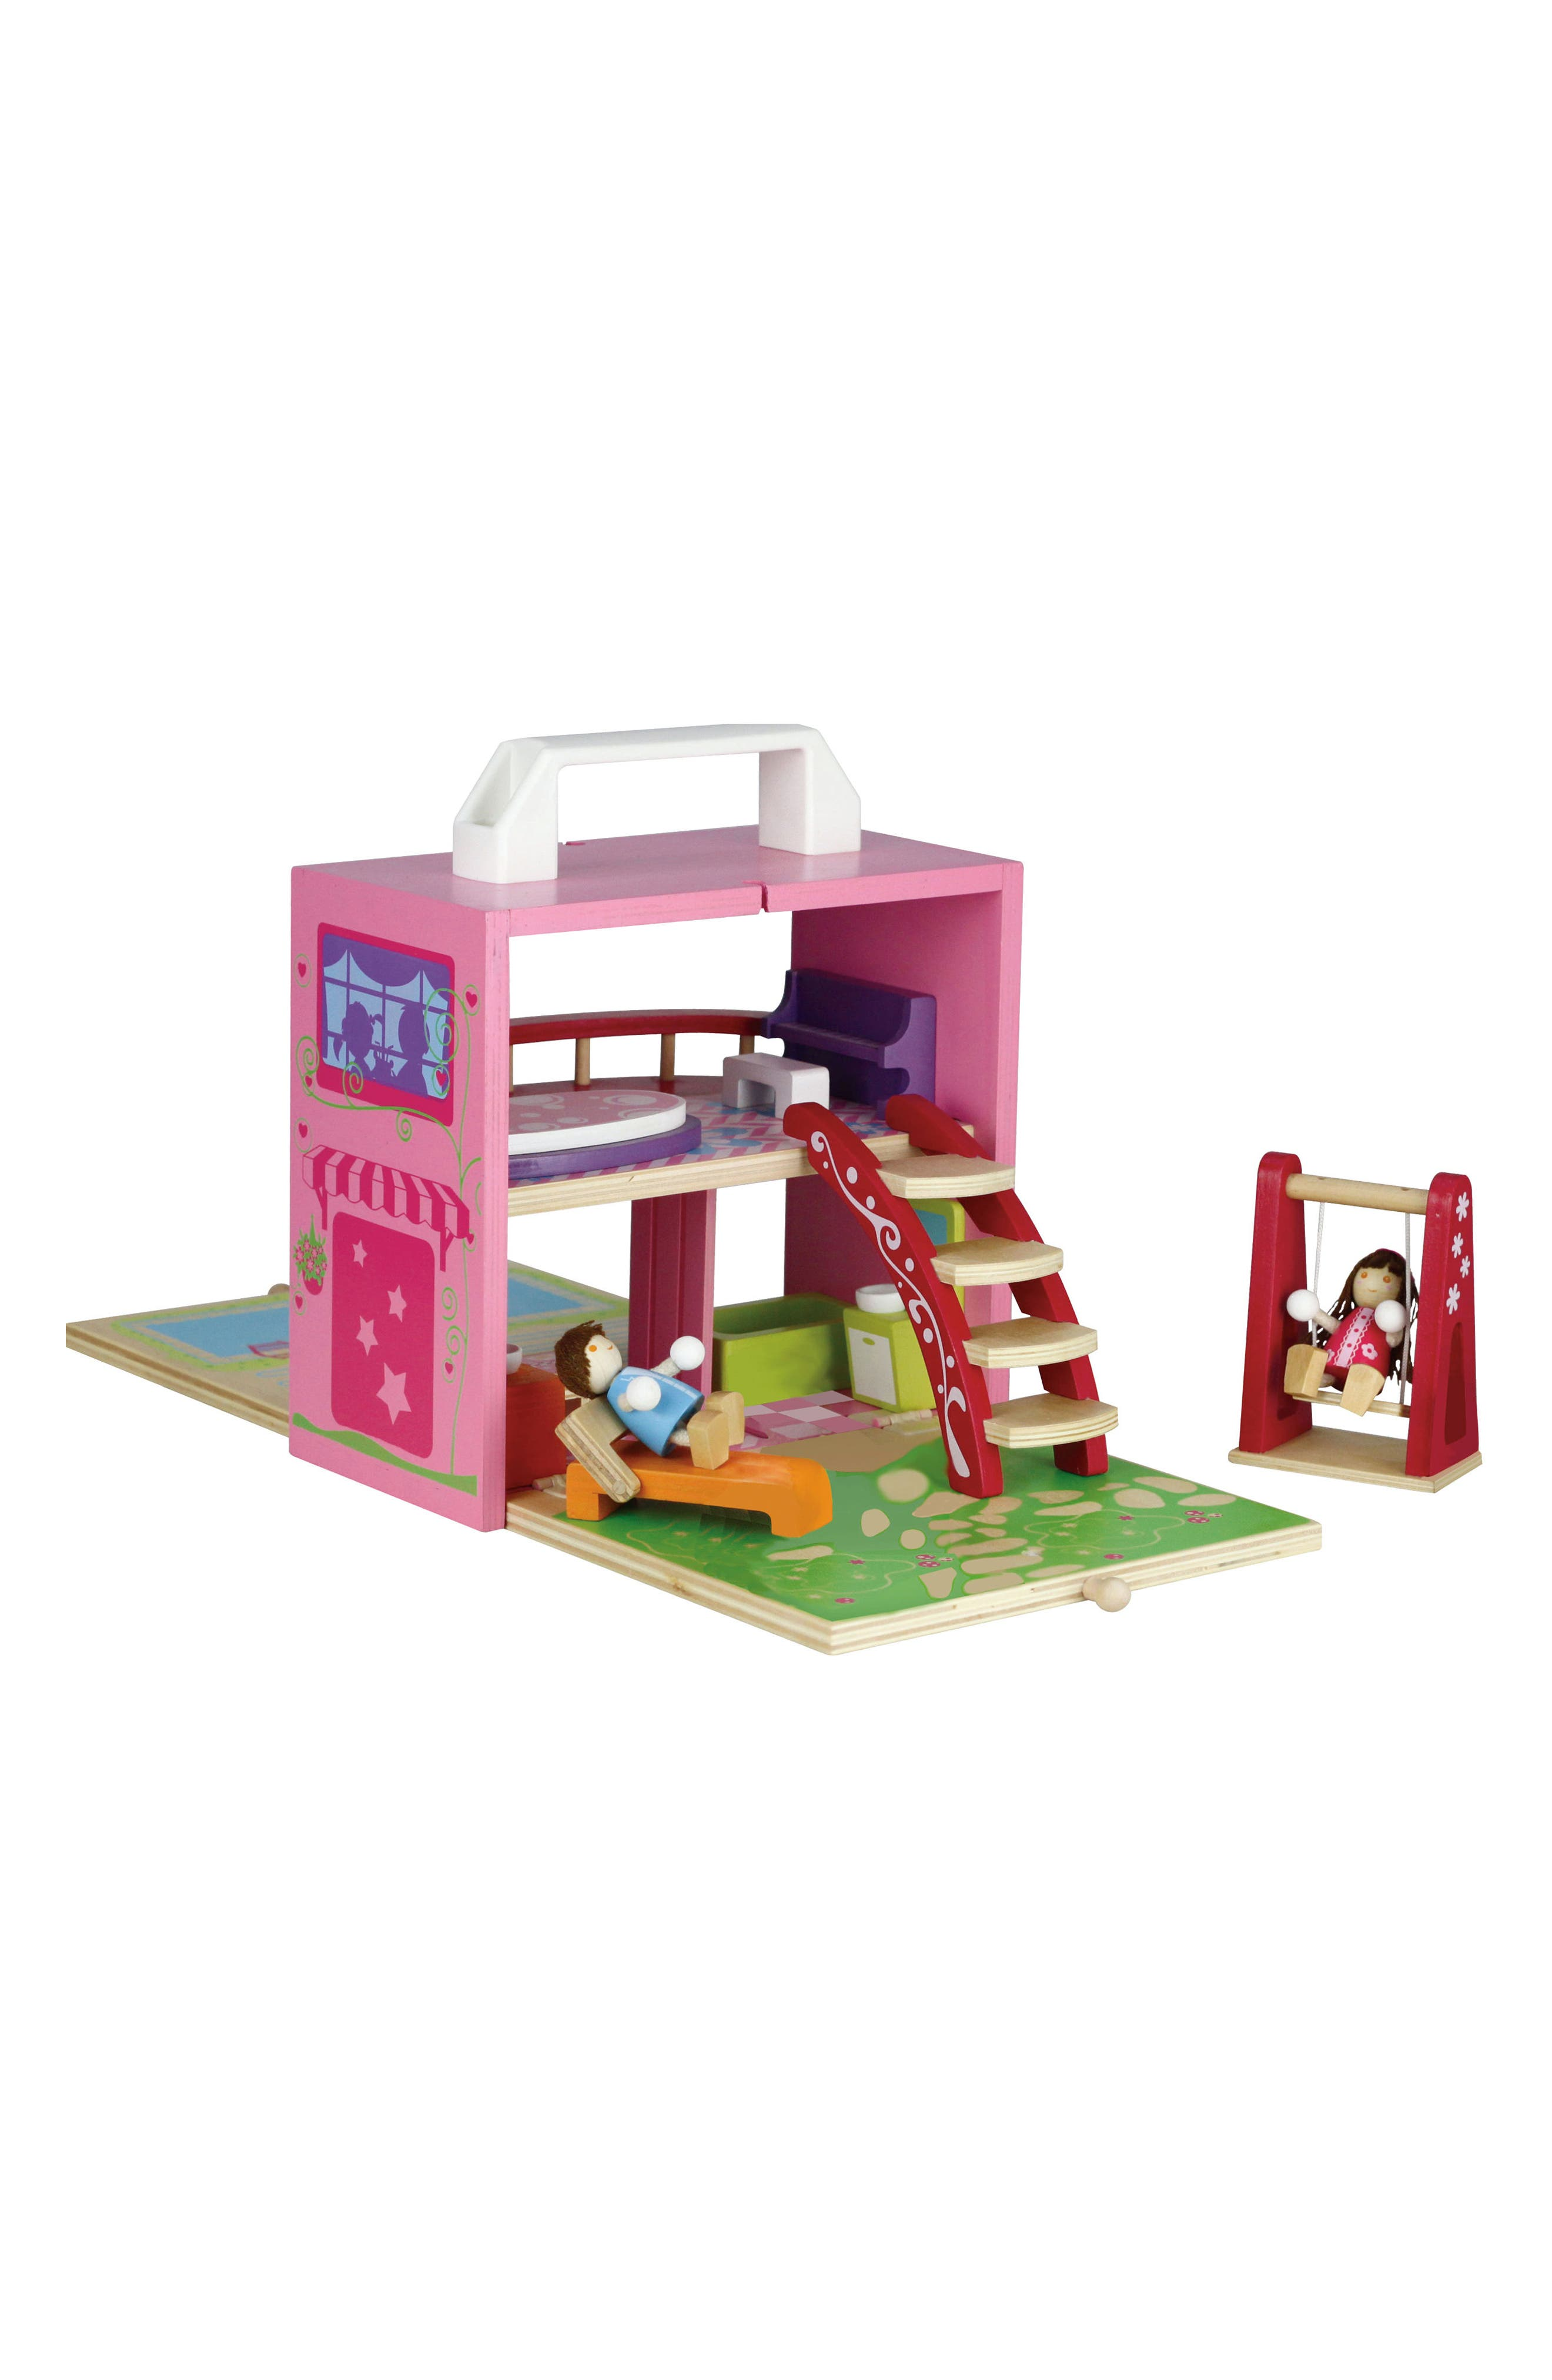 13-Piece Wooden Dollhouse Box Set,                             Alternate thumbnail 2, color,                             650